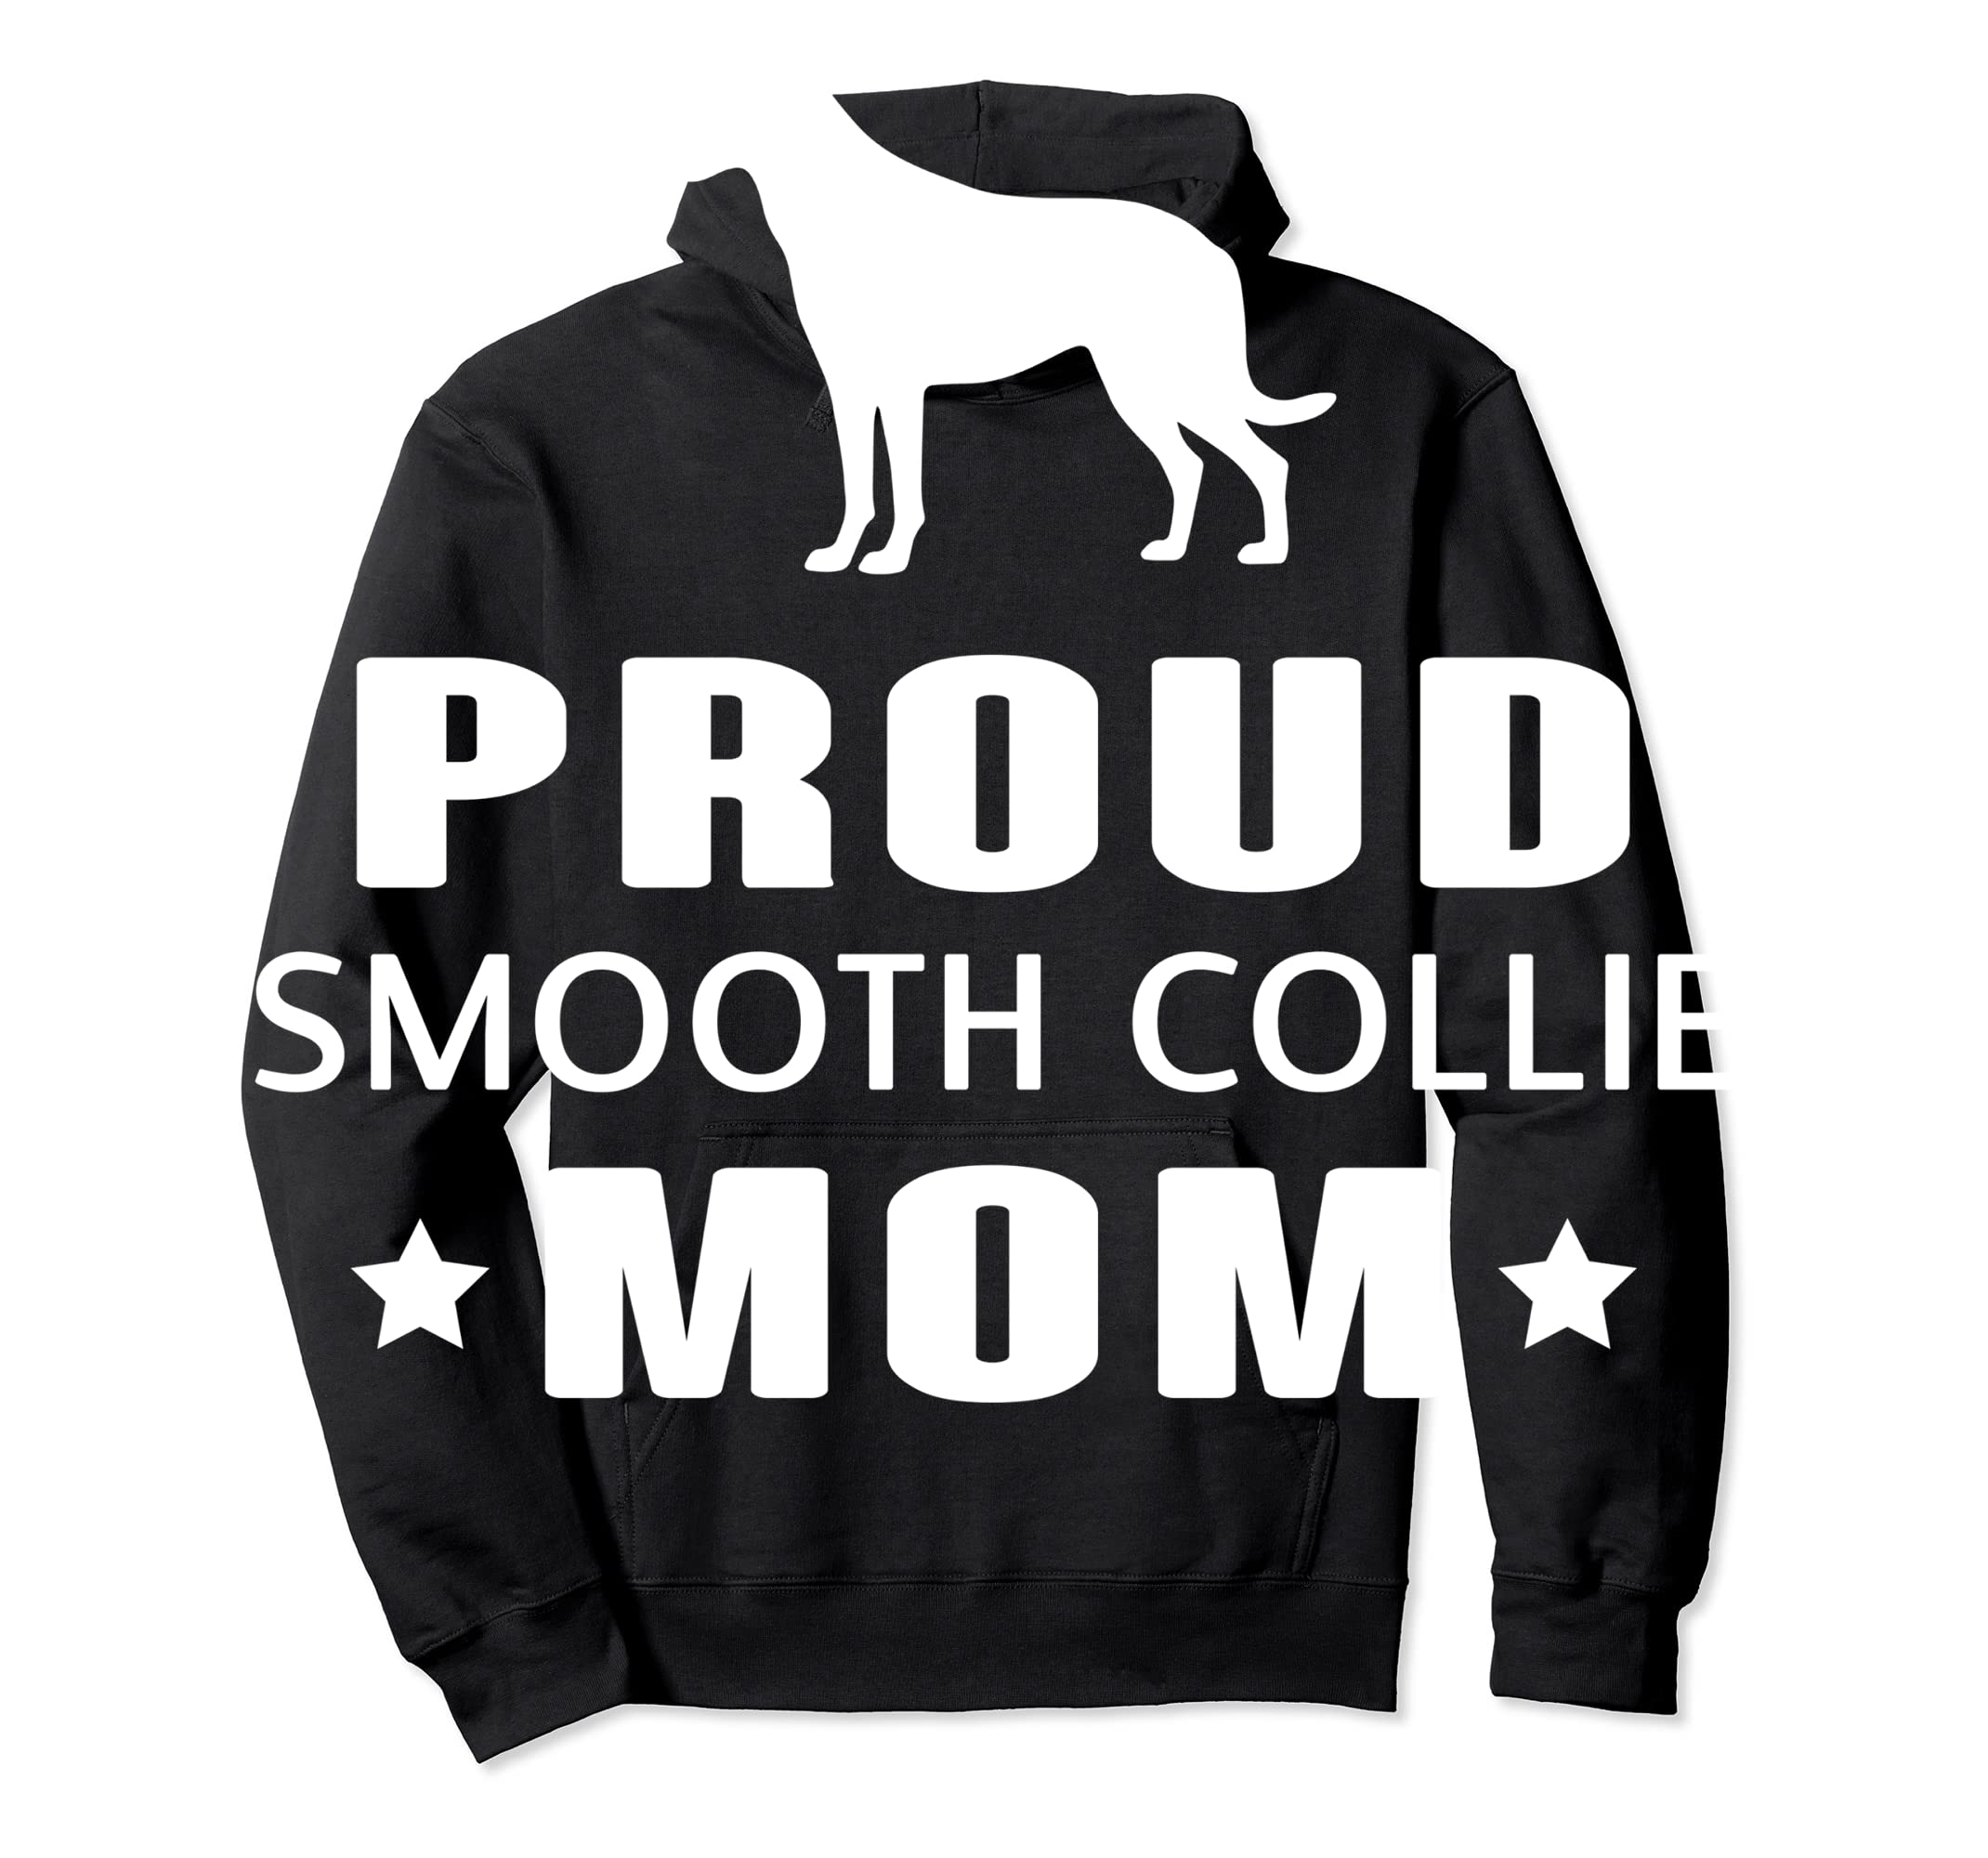 Smooth Collie Funny T-Shirts For Dog Lovers-Hoodie-Black